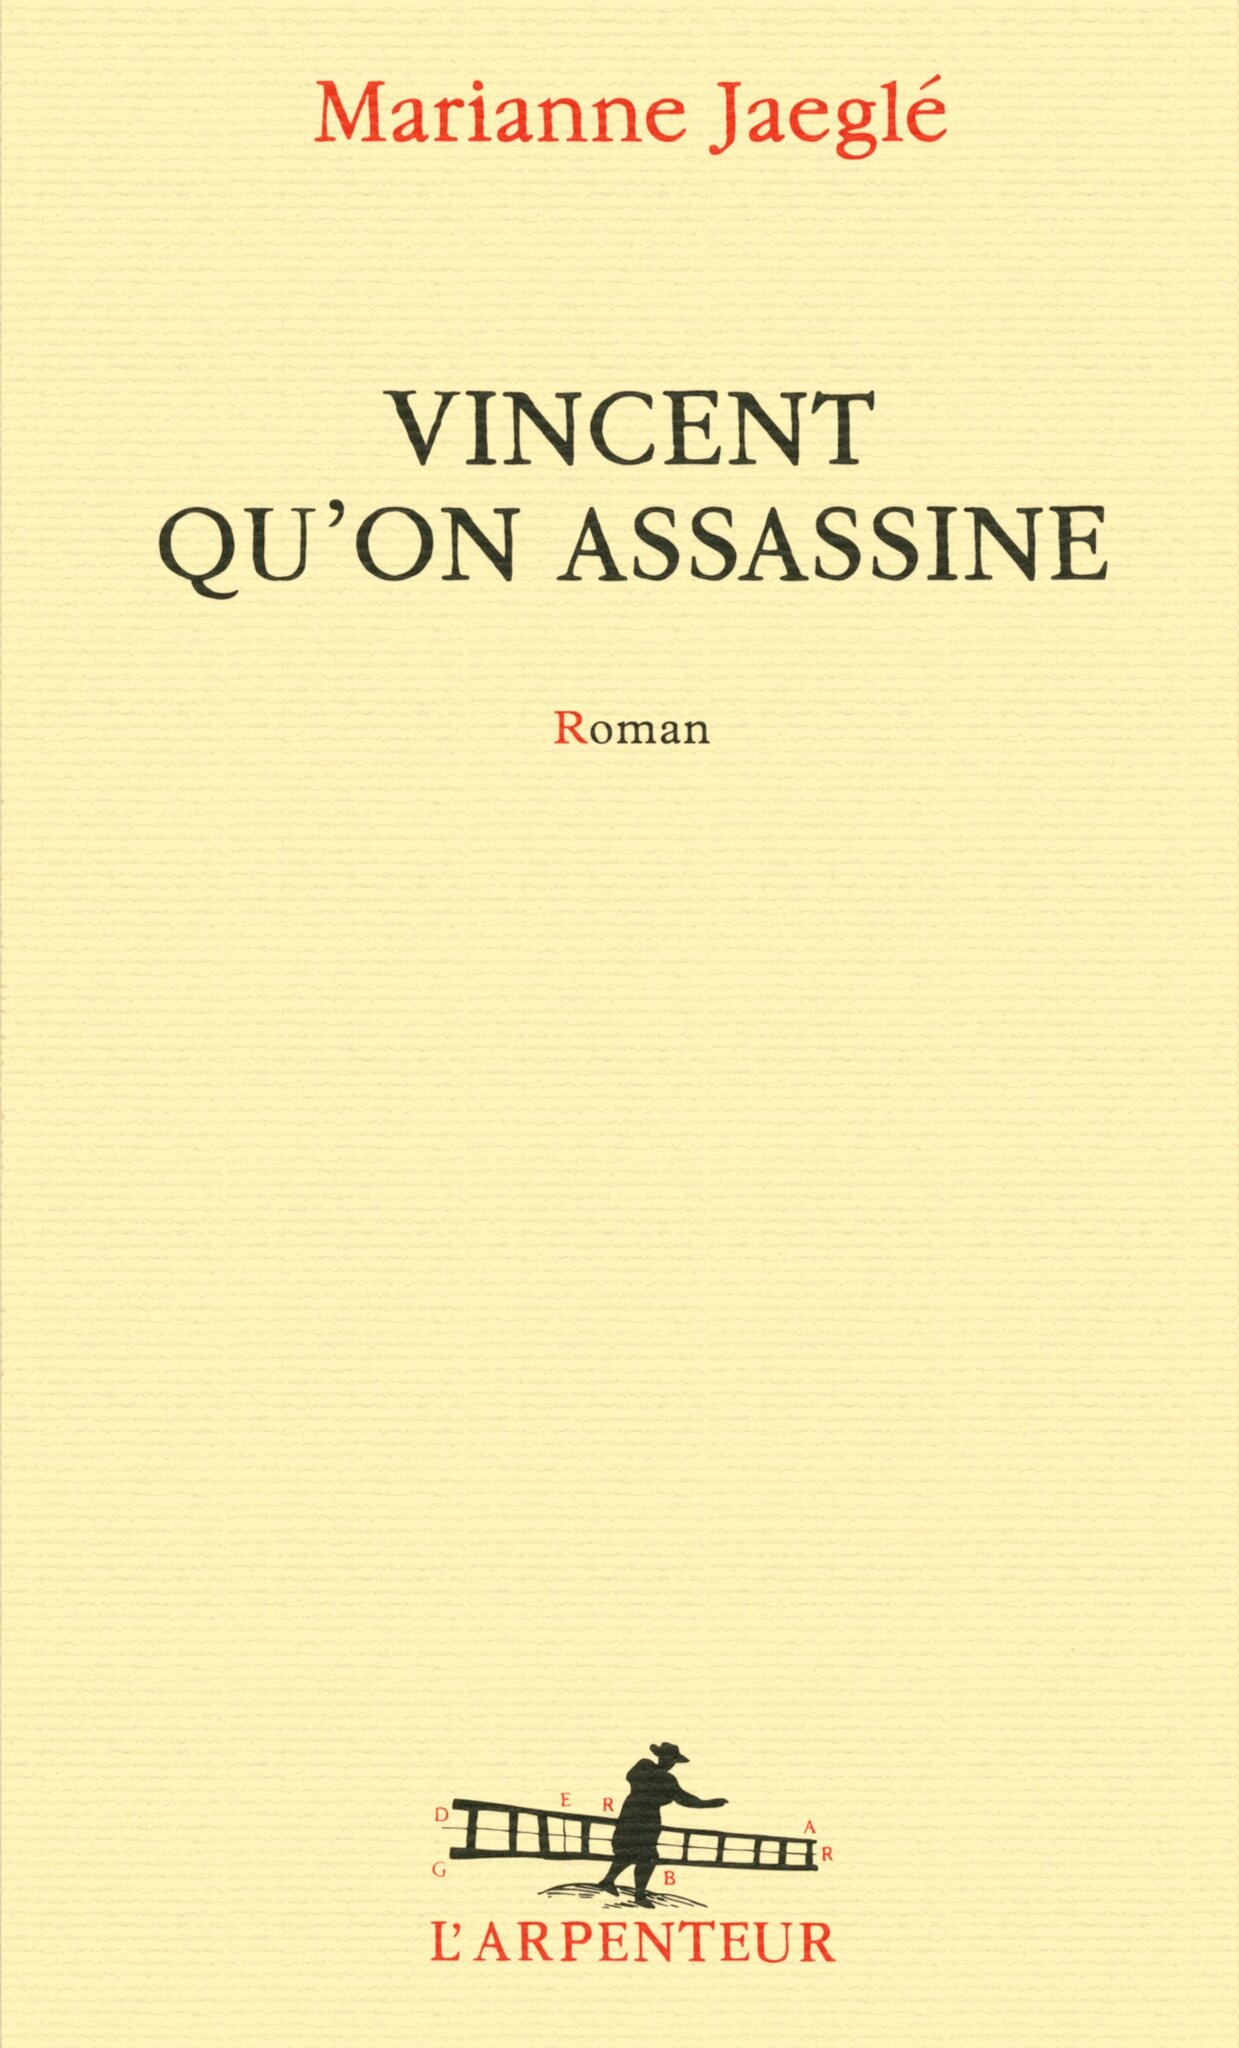 VINCENT QU'ON ASSASSINE - Marianne JAEGLÉ